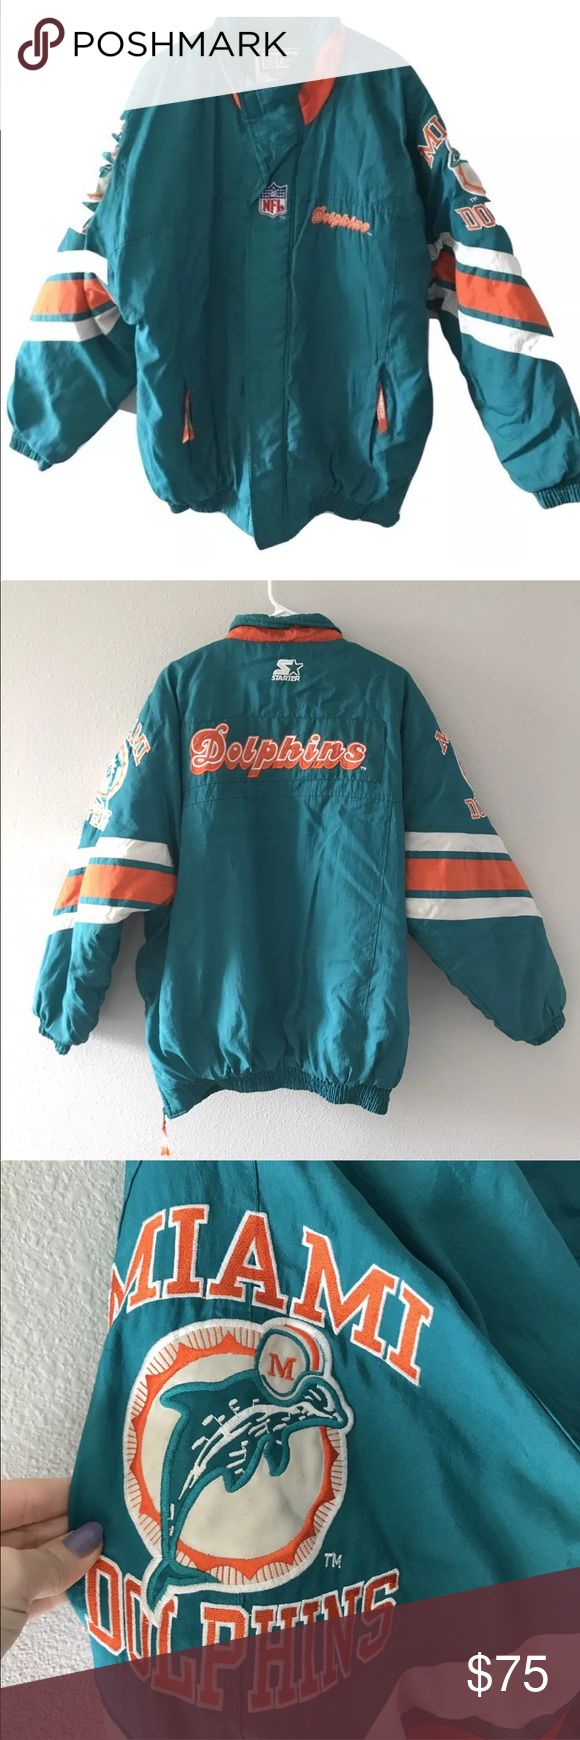 """VTG 90s Starter Jacket Miami Dolphins Puffer coat Vtg Starter NFL Proline Miami Dolphins Jacket Coat Men large Puffer 90s Full Zip   Great condition authentic Starter Proline NFL Miami Dolphins jacket.   Hidden Full Zipper closure with Velcro  No holes or stains.   Size Large (runs big)  Chest: 29""""  Length: 31"""" STARTER Jackets & Coats Puffers"""